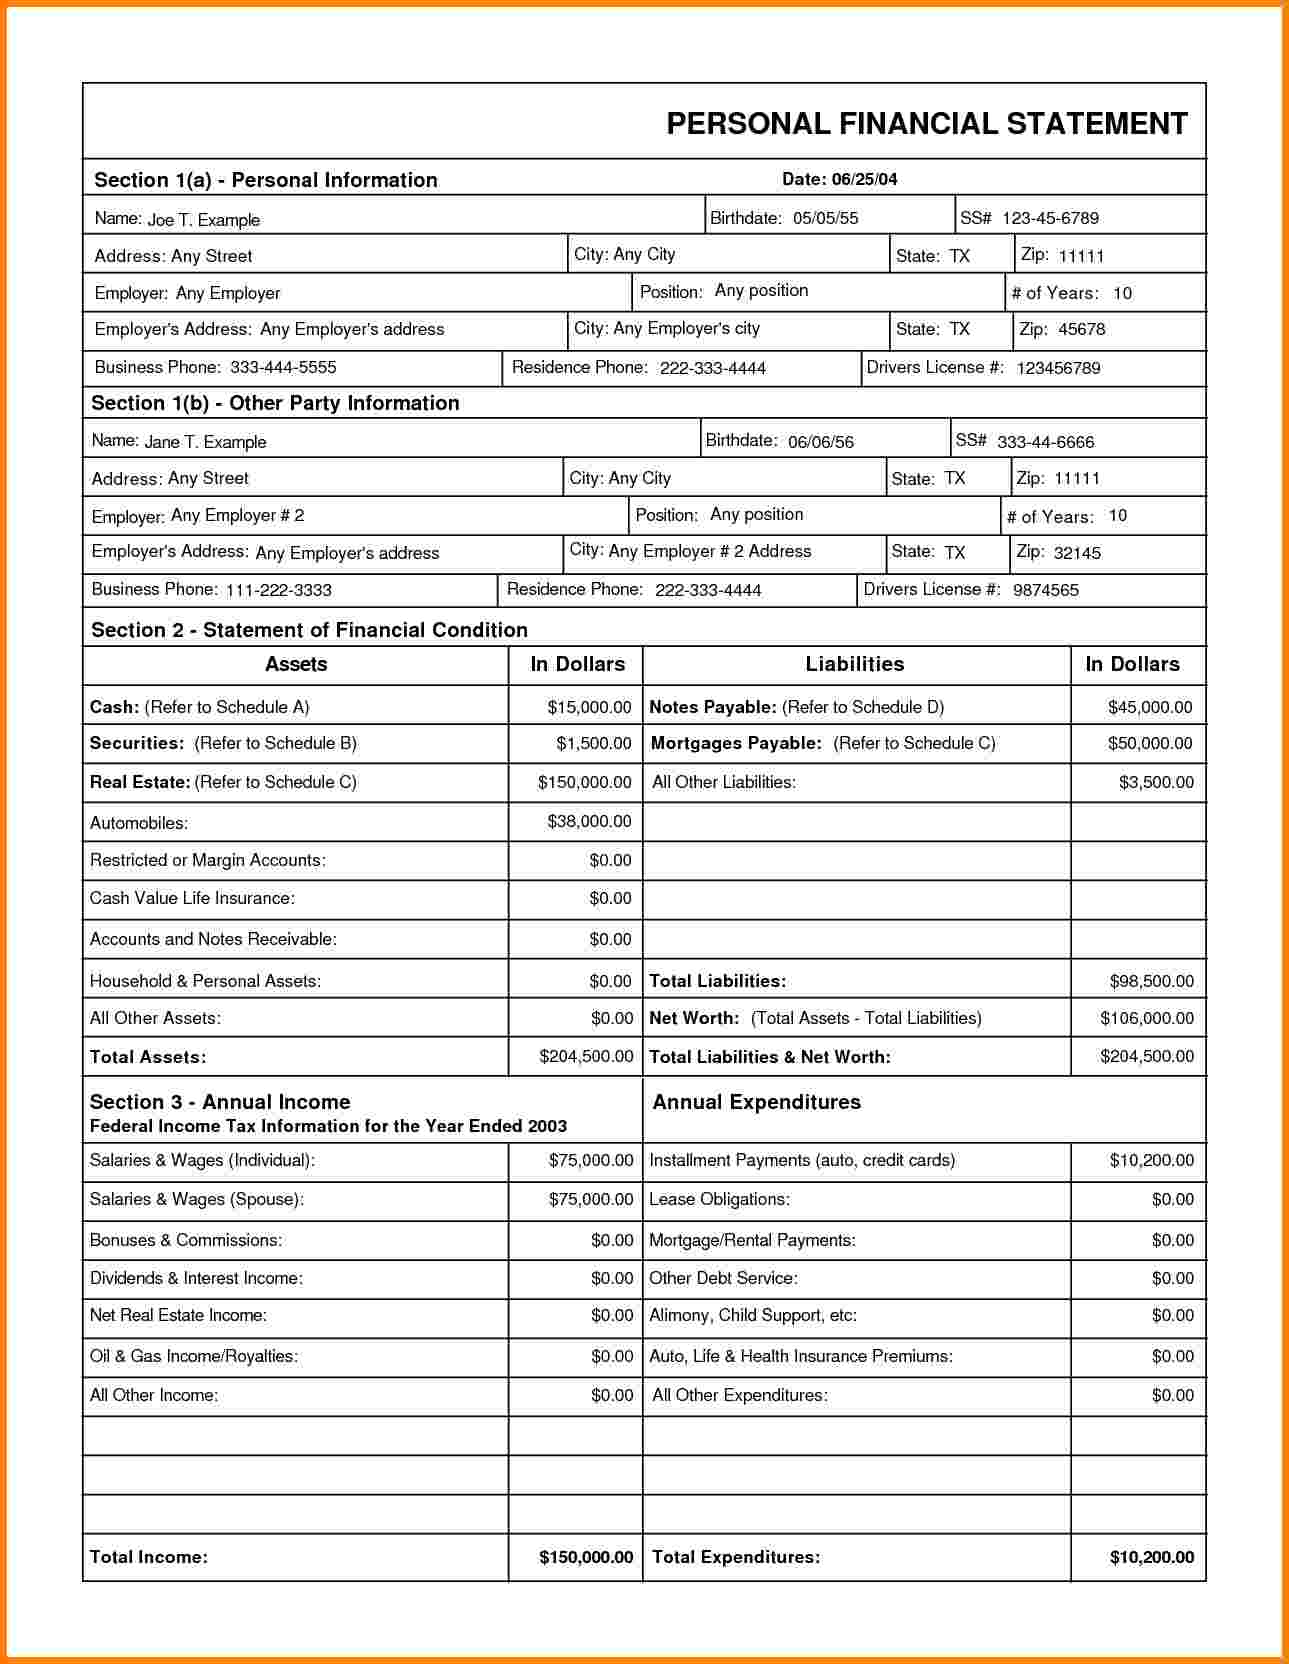 Personal Financial Statement Form Printable And Personal Financial Statement Form Ps 15